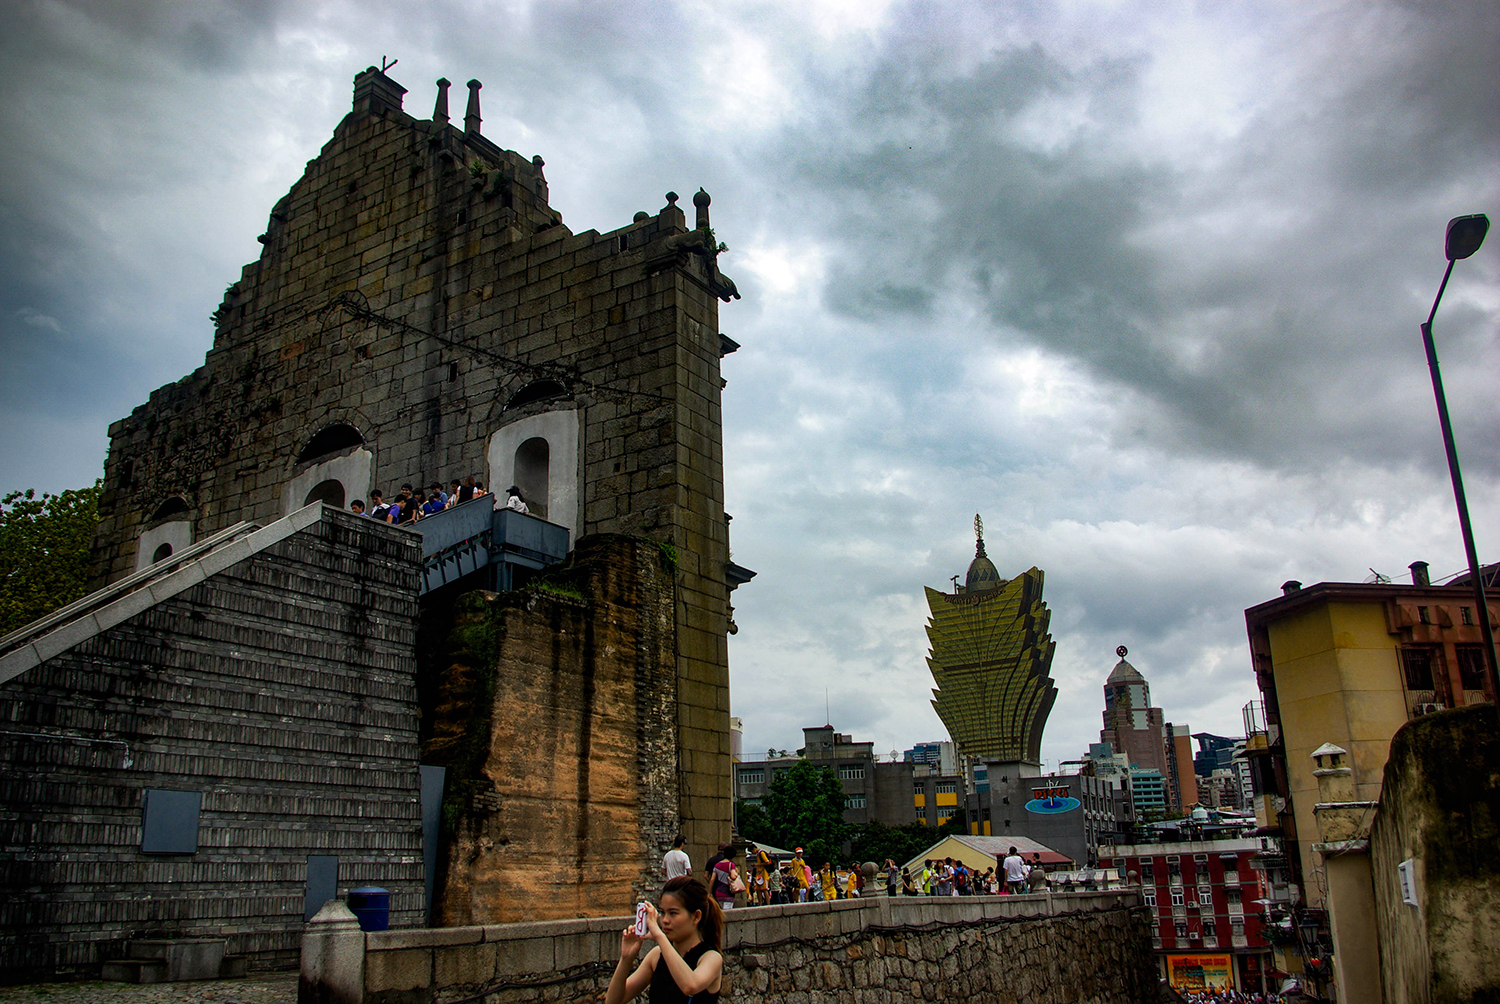 <p>A woman turns her back on the visitors clogging the steps of Macao's landmark Igreja de São Paulo ruins and the skyline of casino towers to capture her own take on the densely populated city.</p>